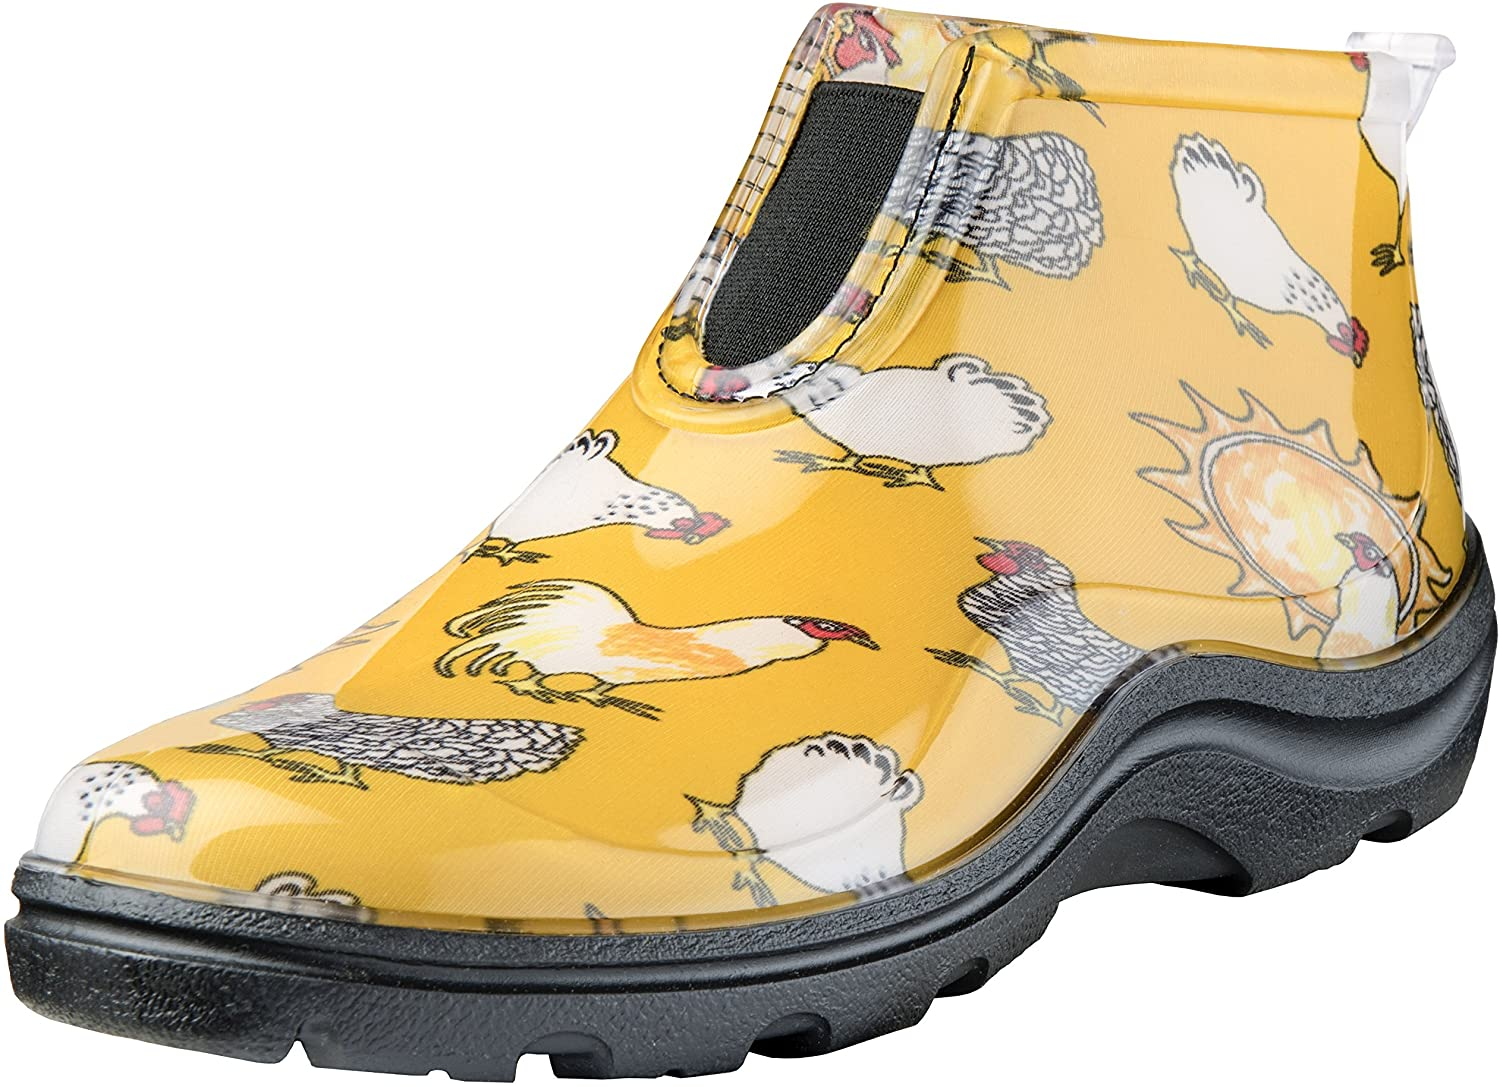 Sloggers Womens Waterproof Rain and Garden Ankle Boot with Comfort Insole, Chickens Daffodil Yellow, Size 8, Style 2841CDY08